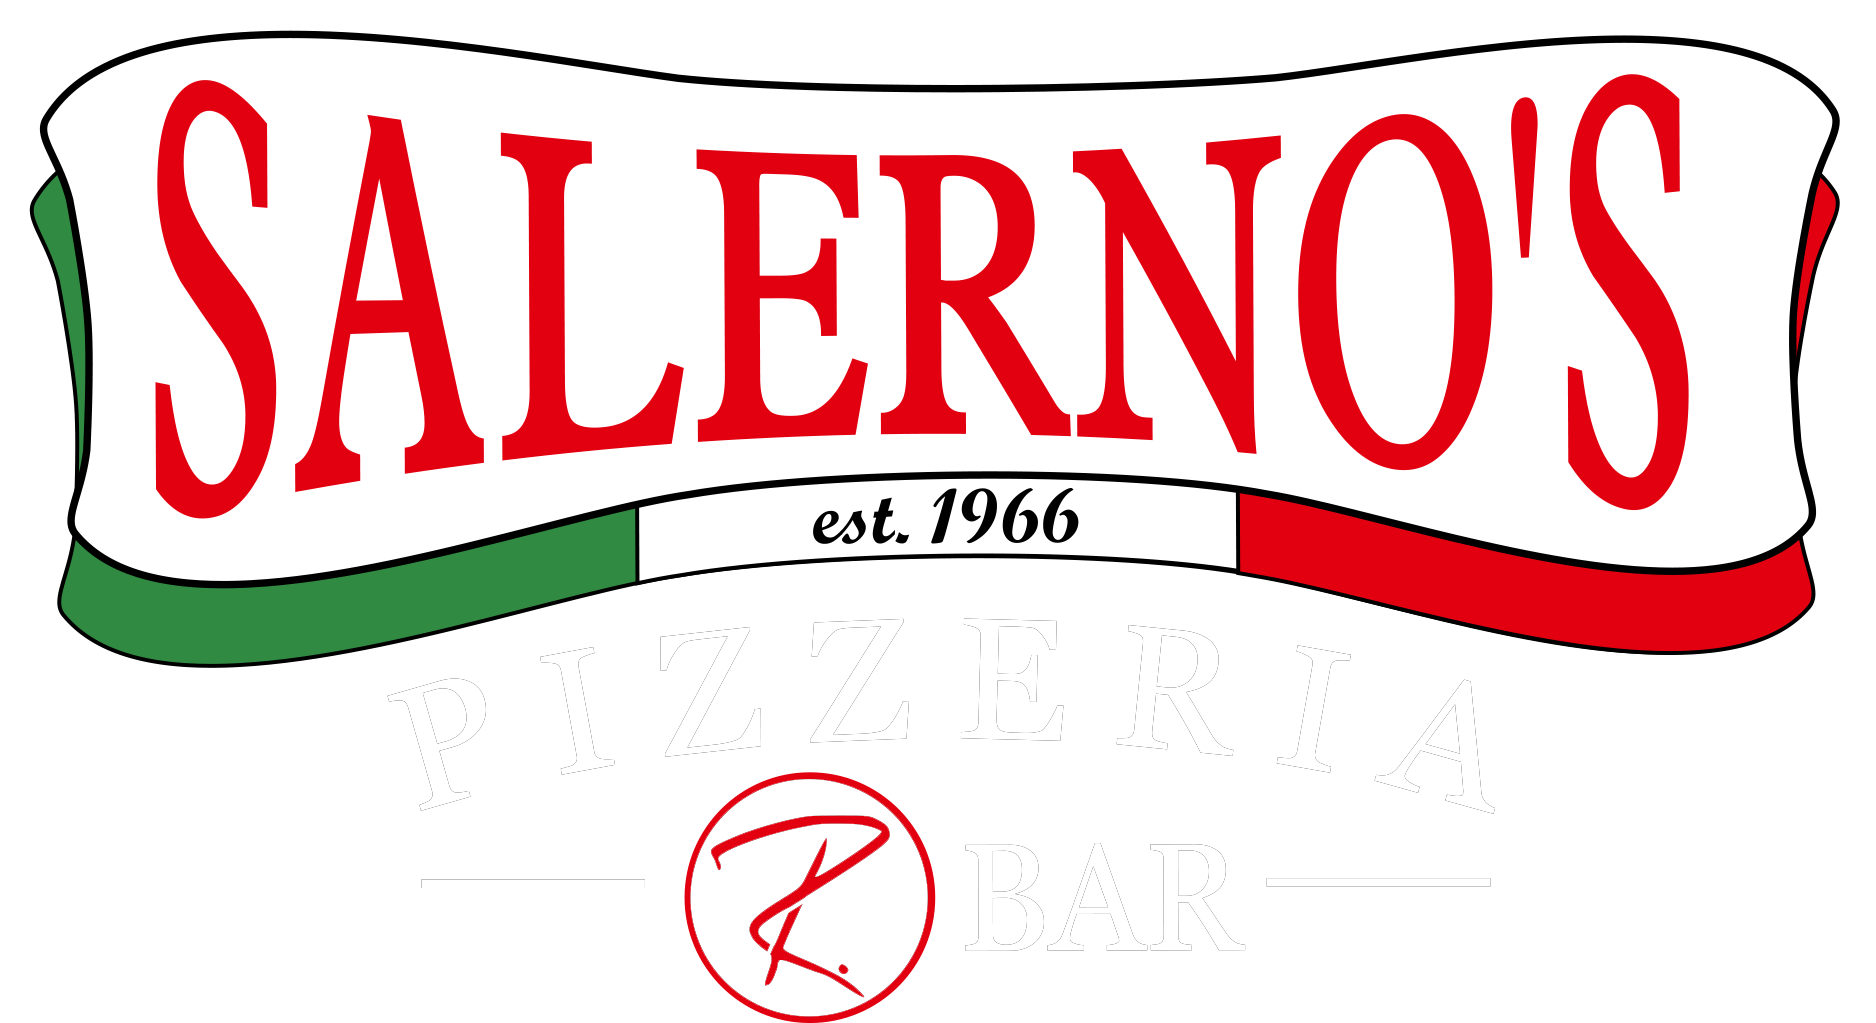 Salerno's pizzeria and r. bar logo